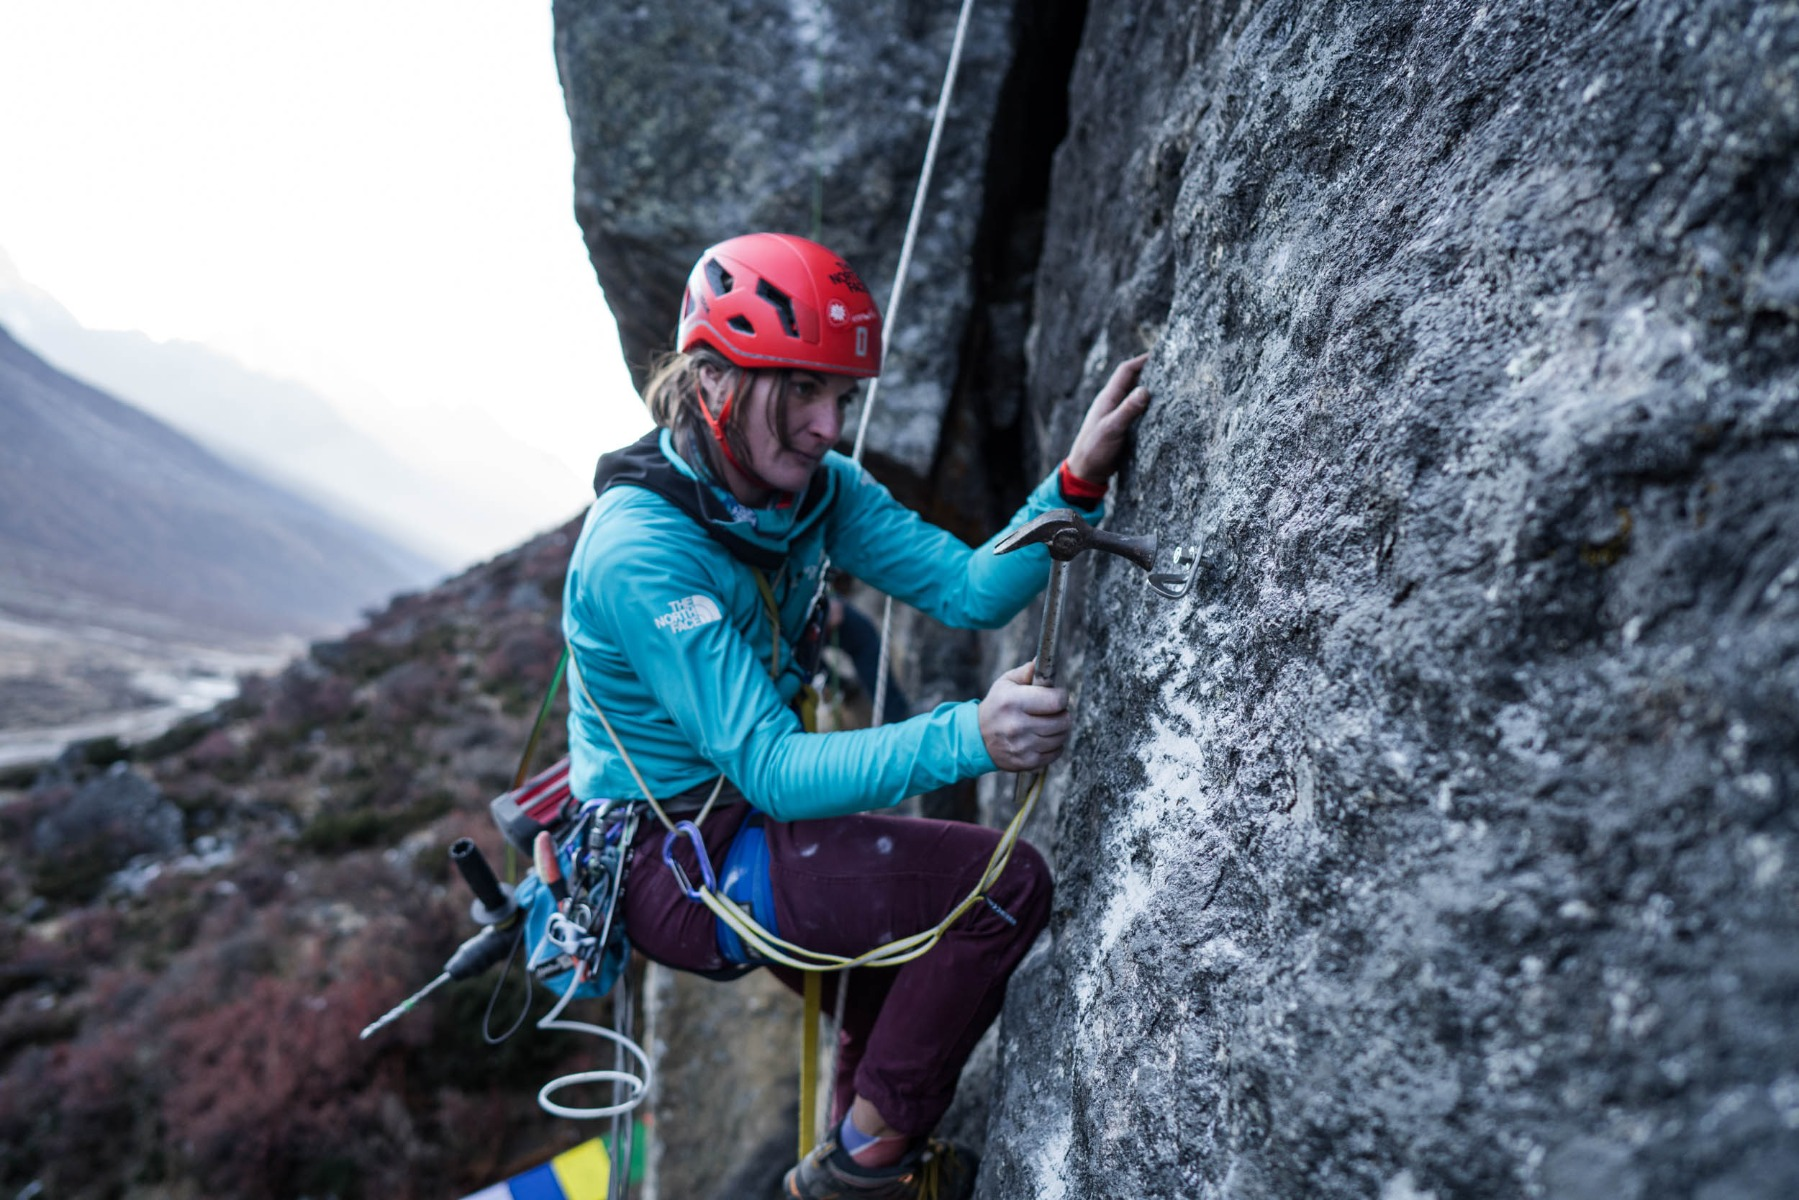 Josie hammering a bolt into the rock.